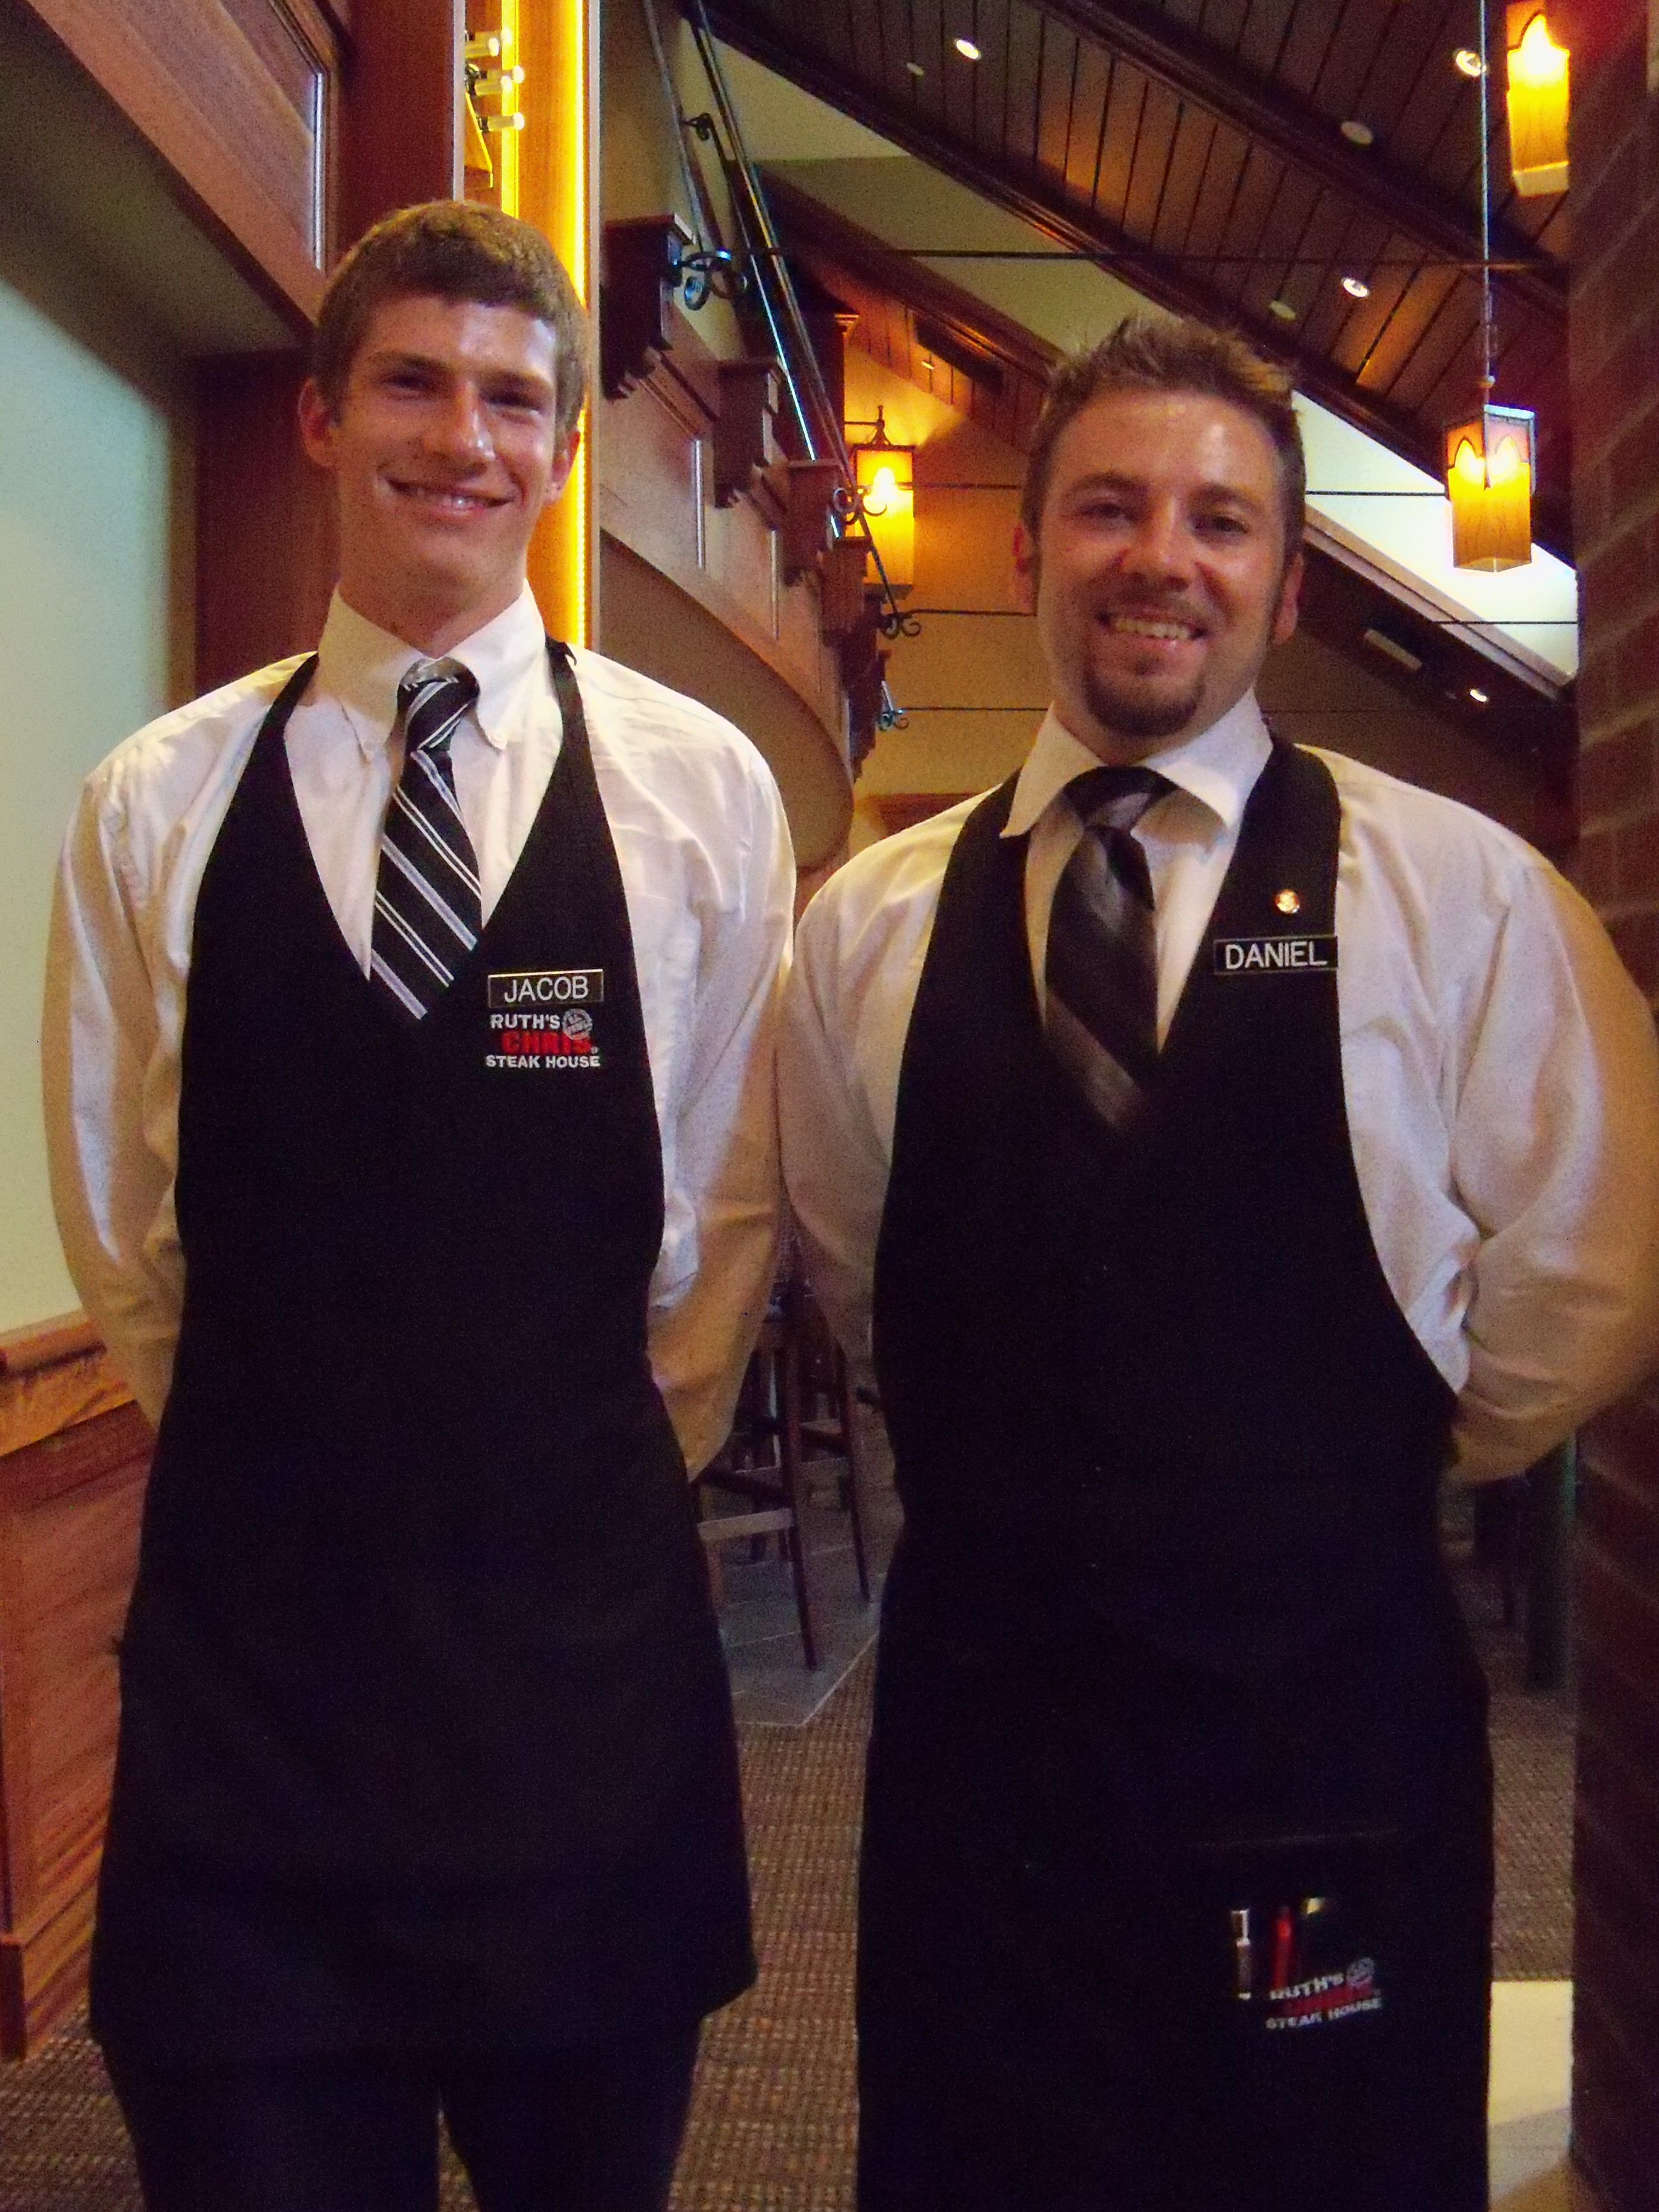 jacob and daniel floor team at ruth s chris asheville nc